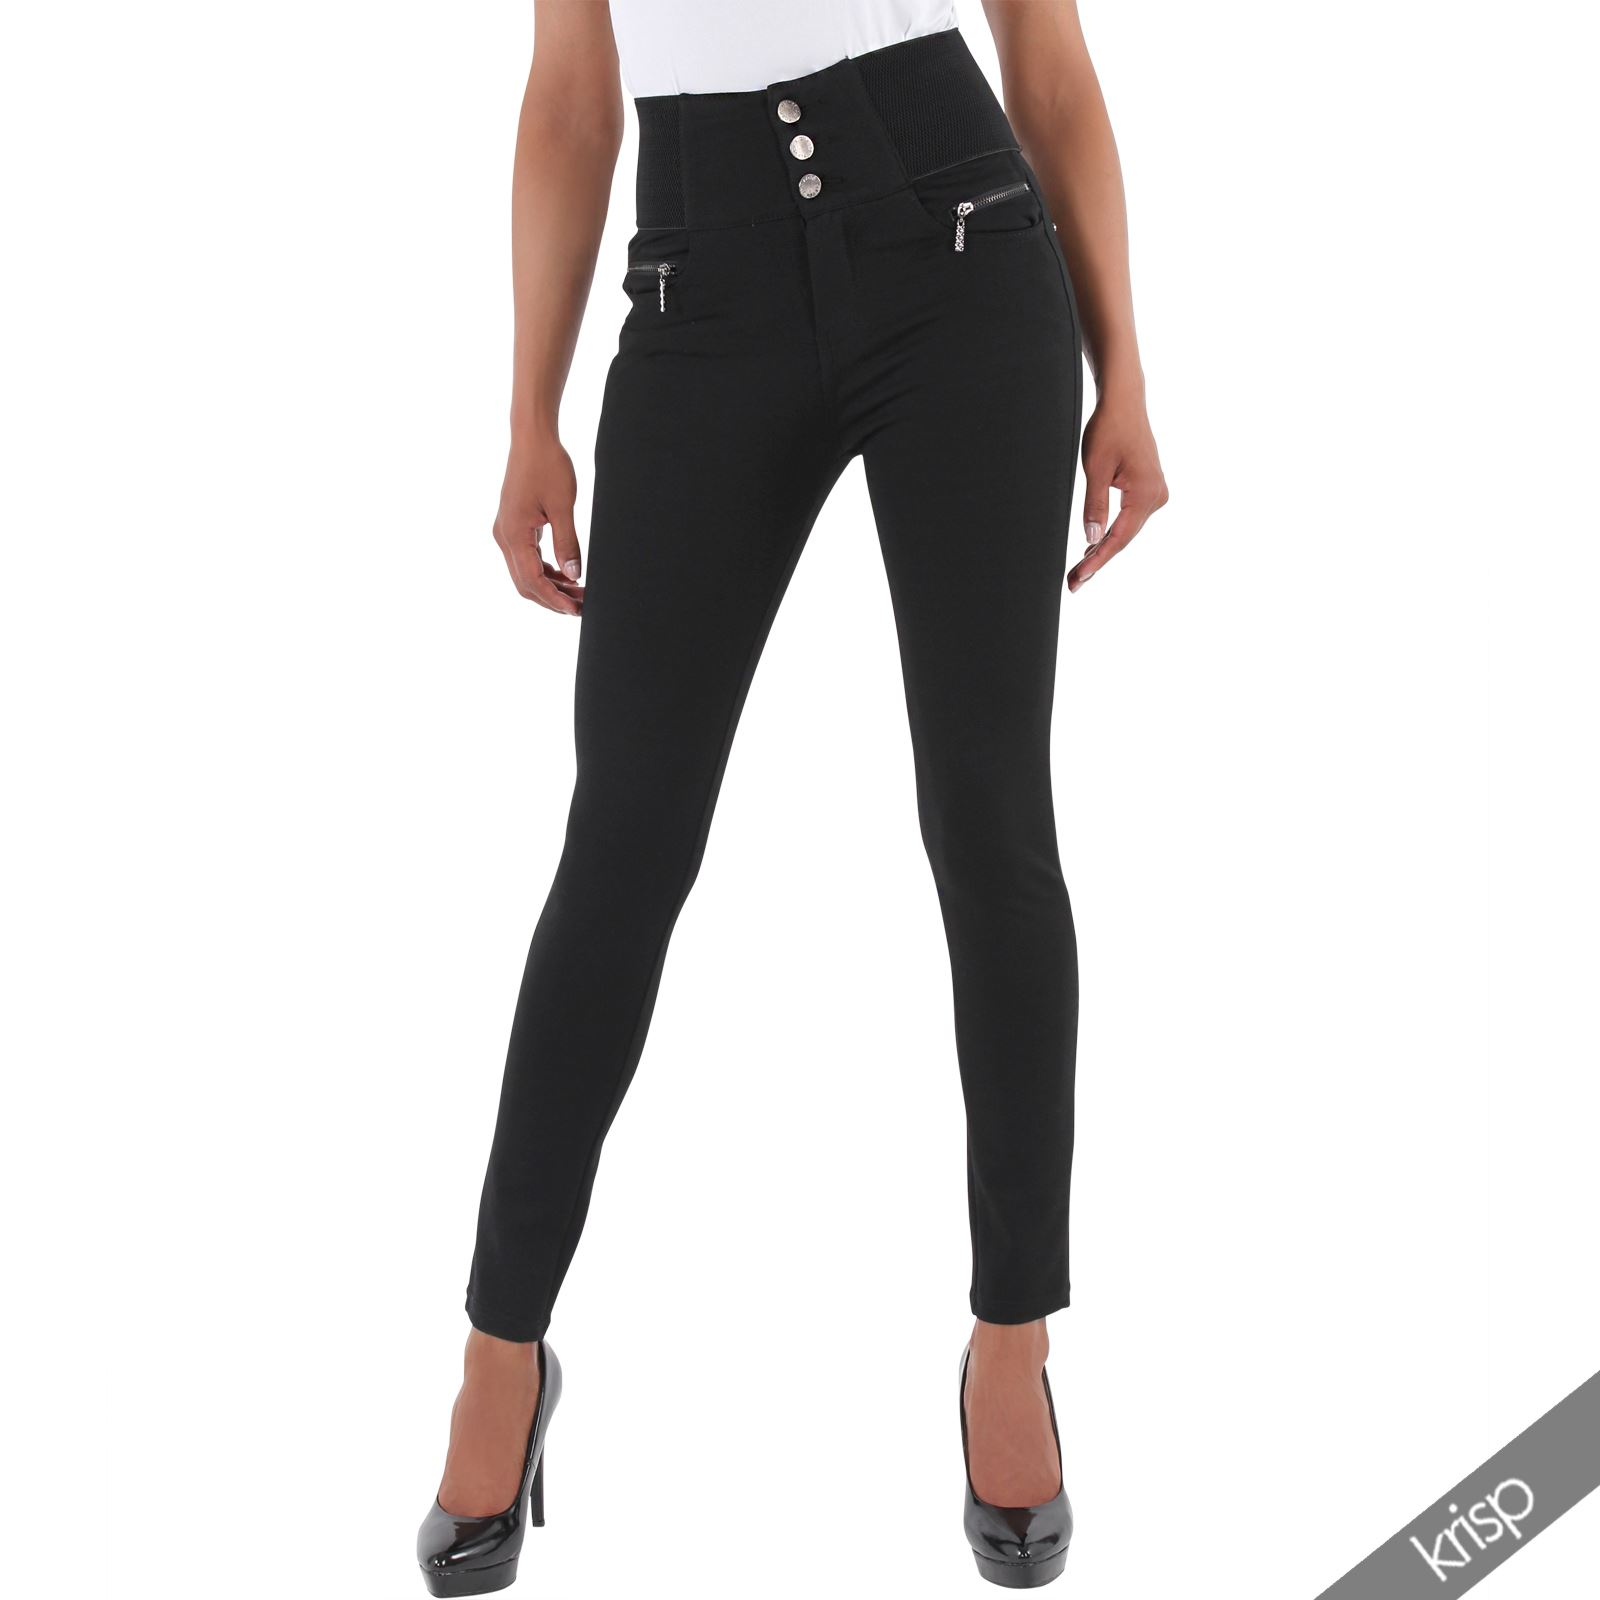 damen stretch hose mit hohem bund jeggings leggings slim. Black Bedroom Furniture Sets. Home Design Ideas